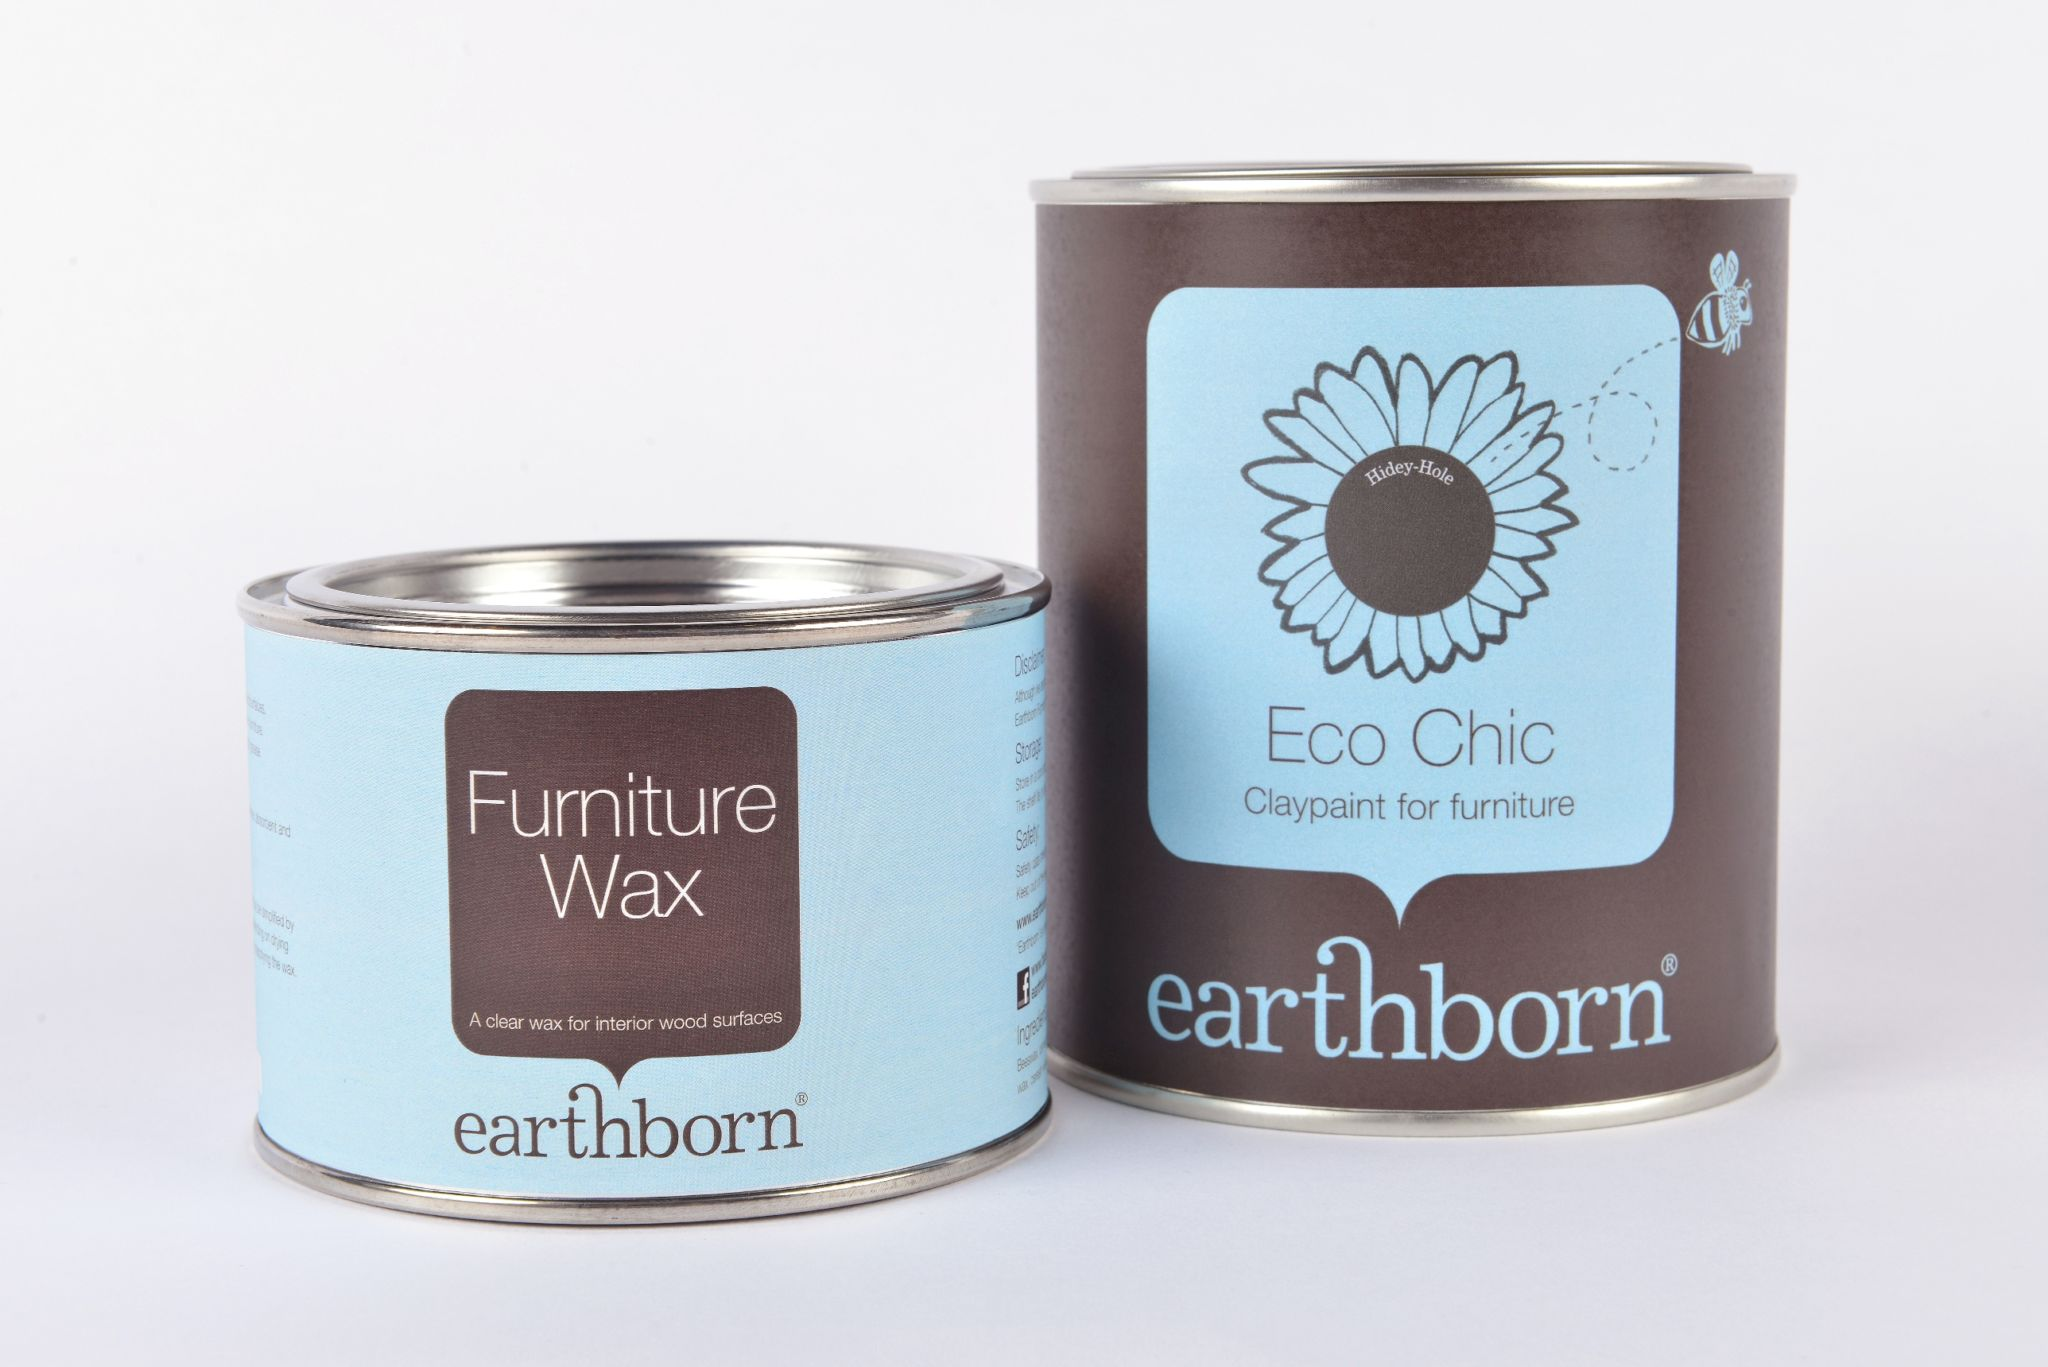 Earthborn Eco Chic is a breathable, thick, creamy paint for furniture. It's safe for children's cots and toys too!